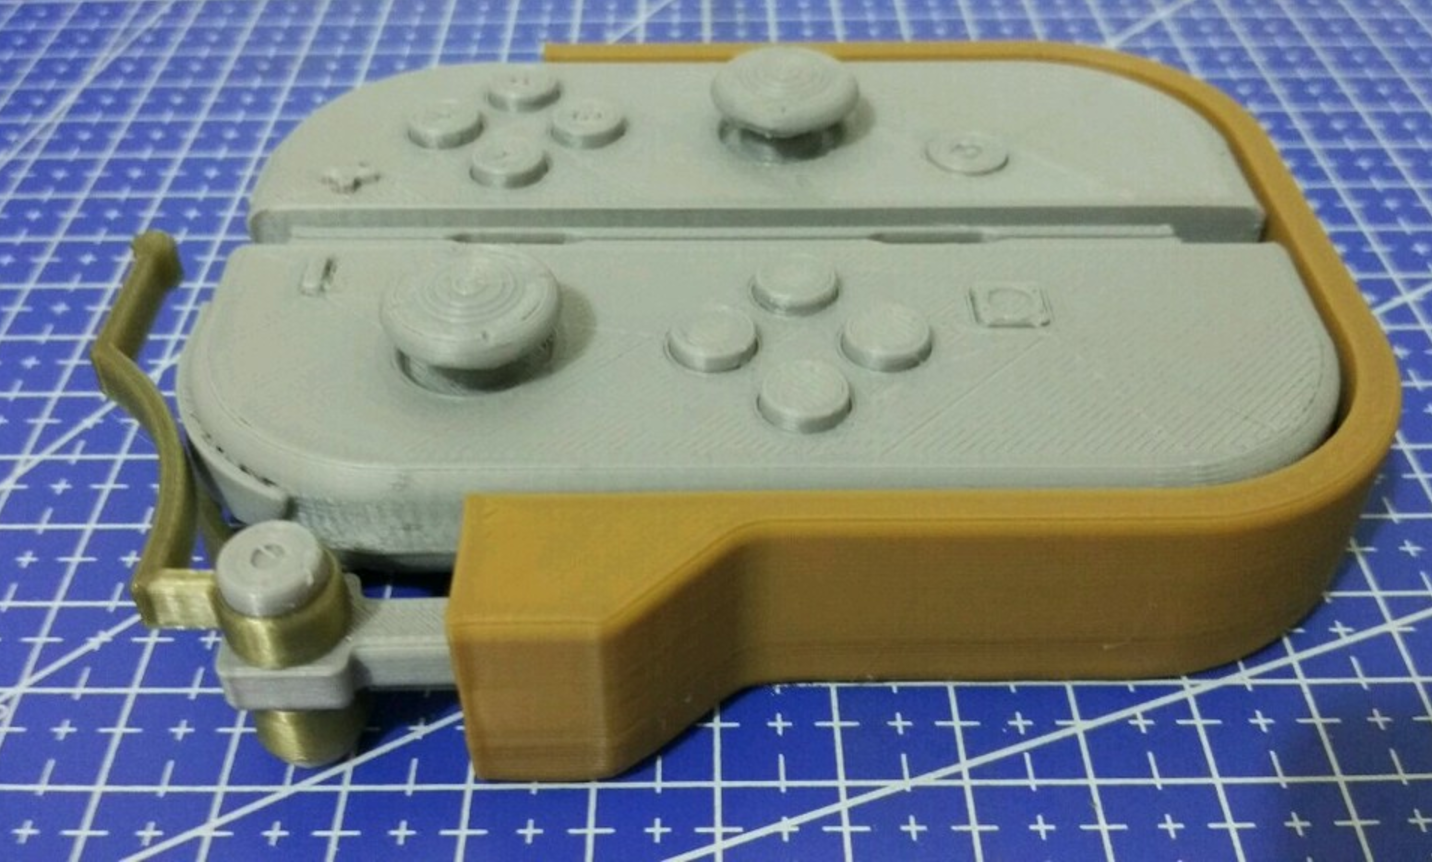 Capture d'écran 2017-04-28 à 17.21.30.png Download free STL file  One-hand adapter for Nintendo Switch's Joy-Cons • 3D printing design, Vexelius